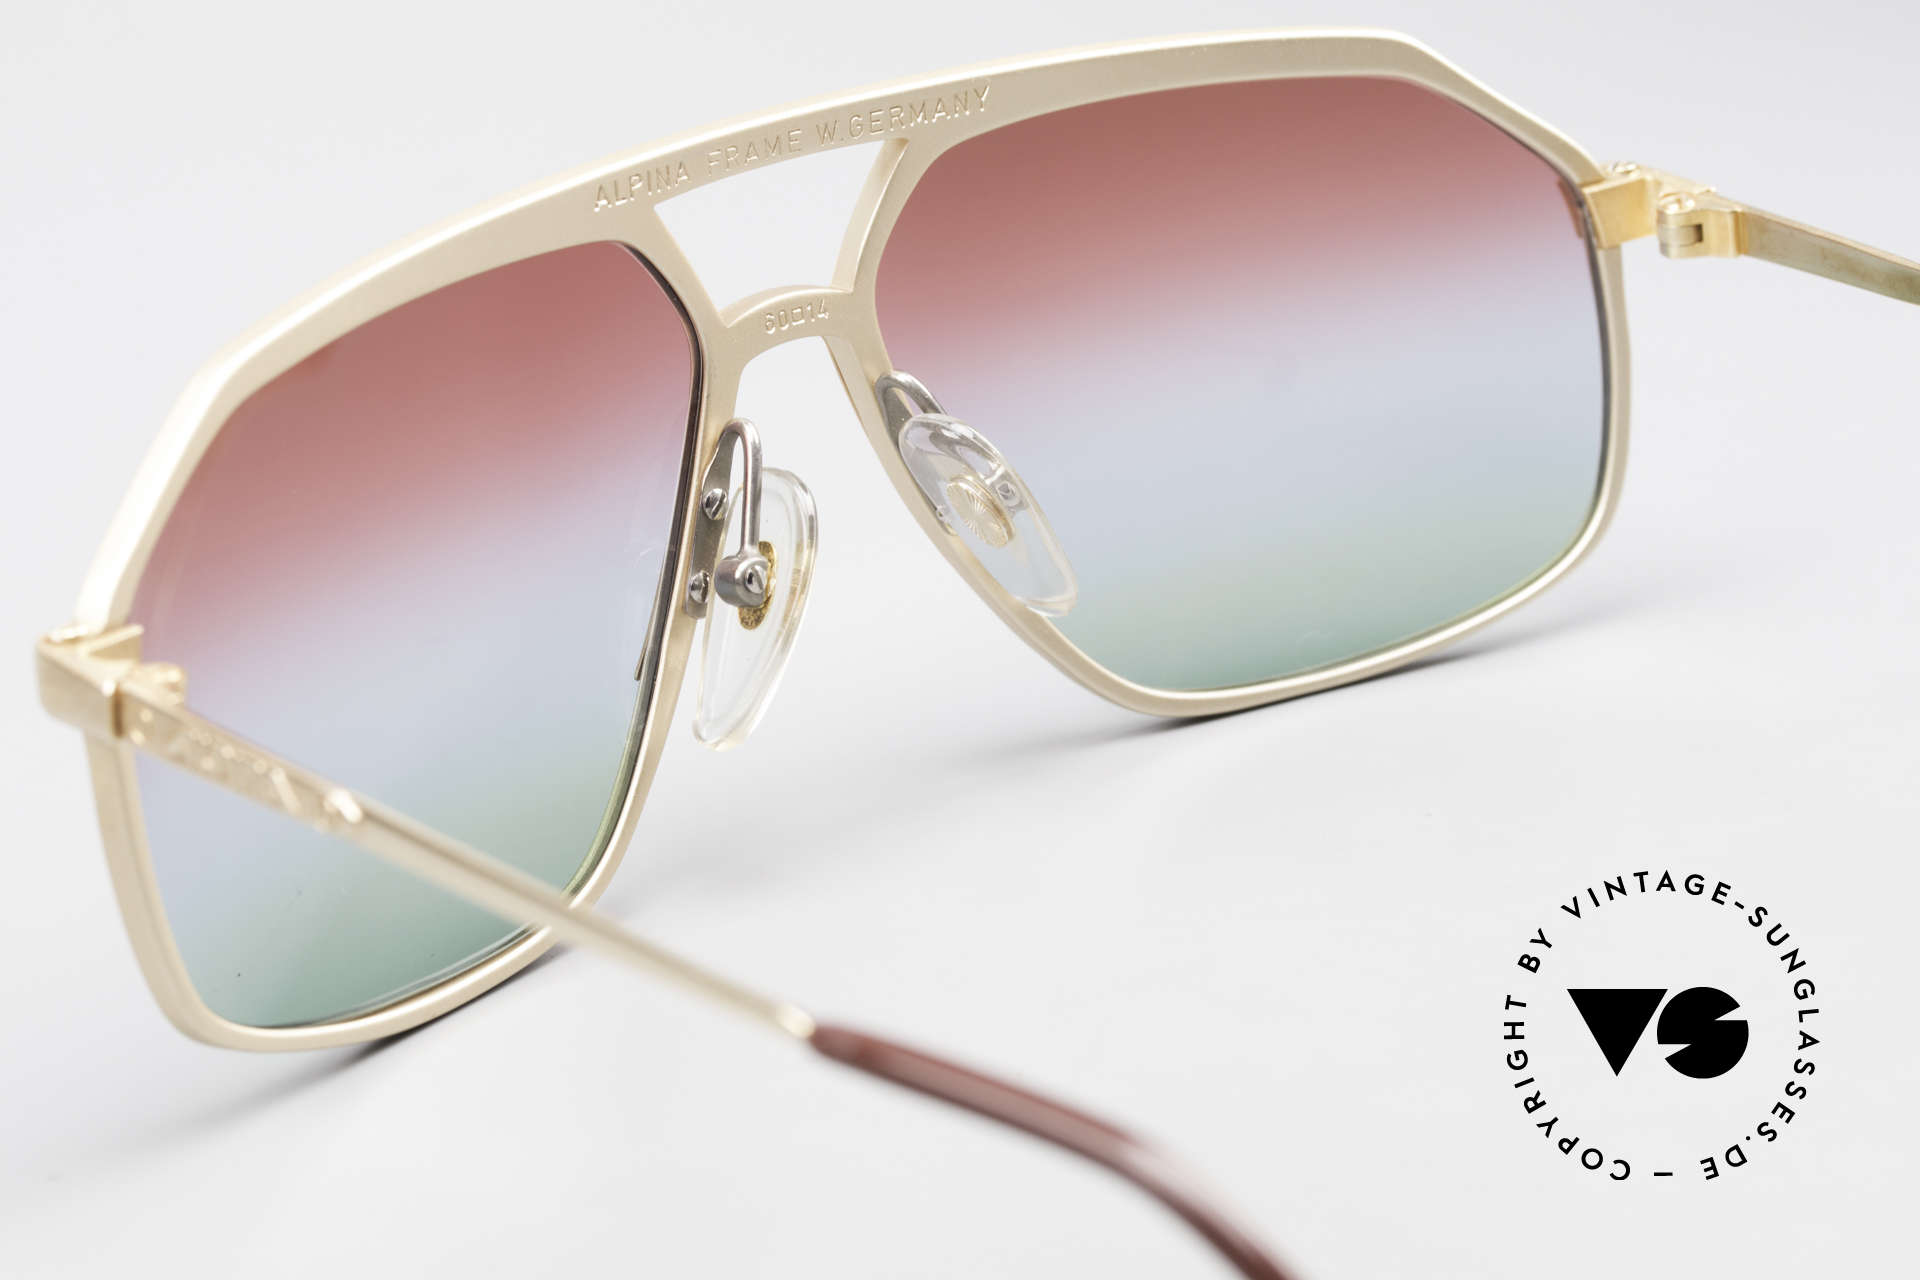 Alpina M6 West Germany Sunglasses 80's, NO RETRO shades; but an old handmade RARITY!, Made for Men and Women